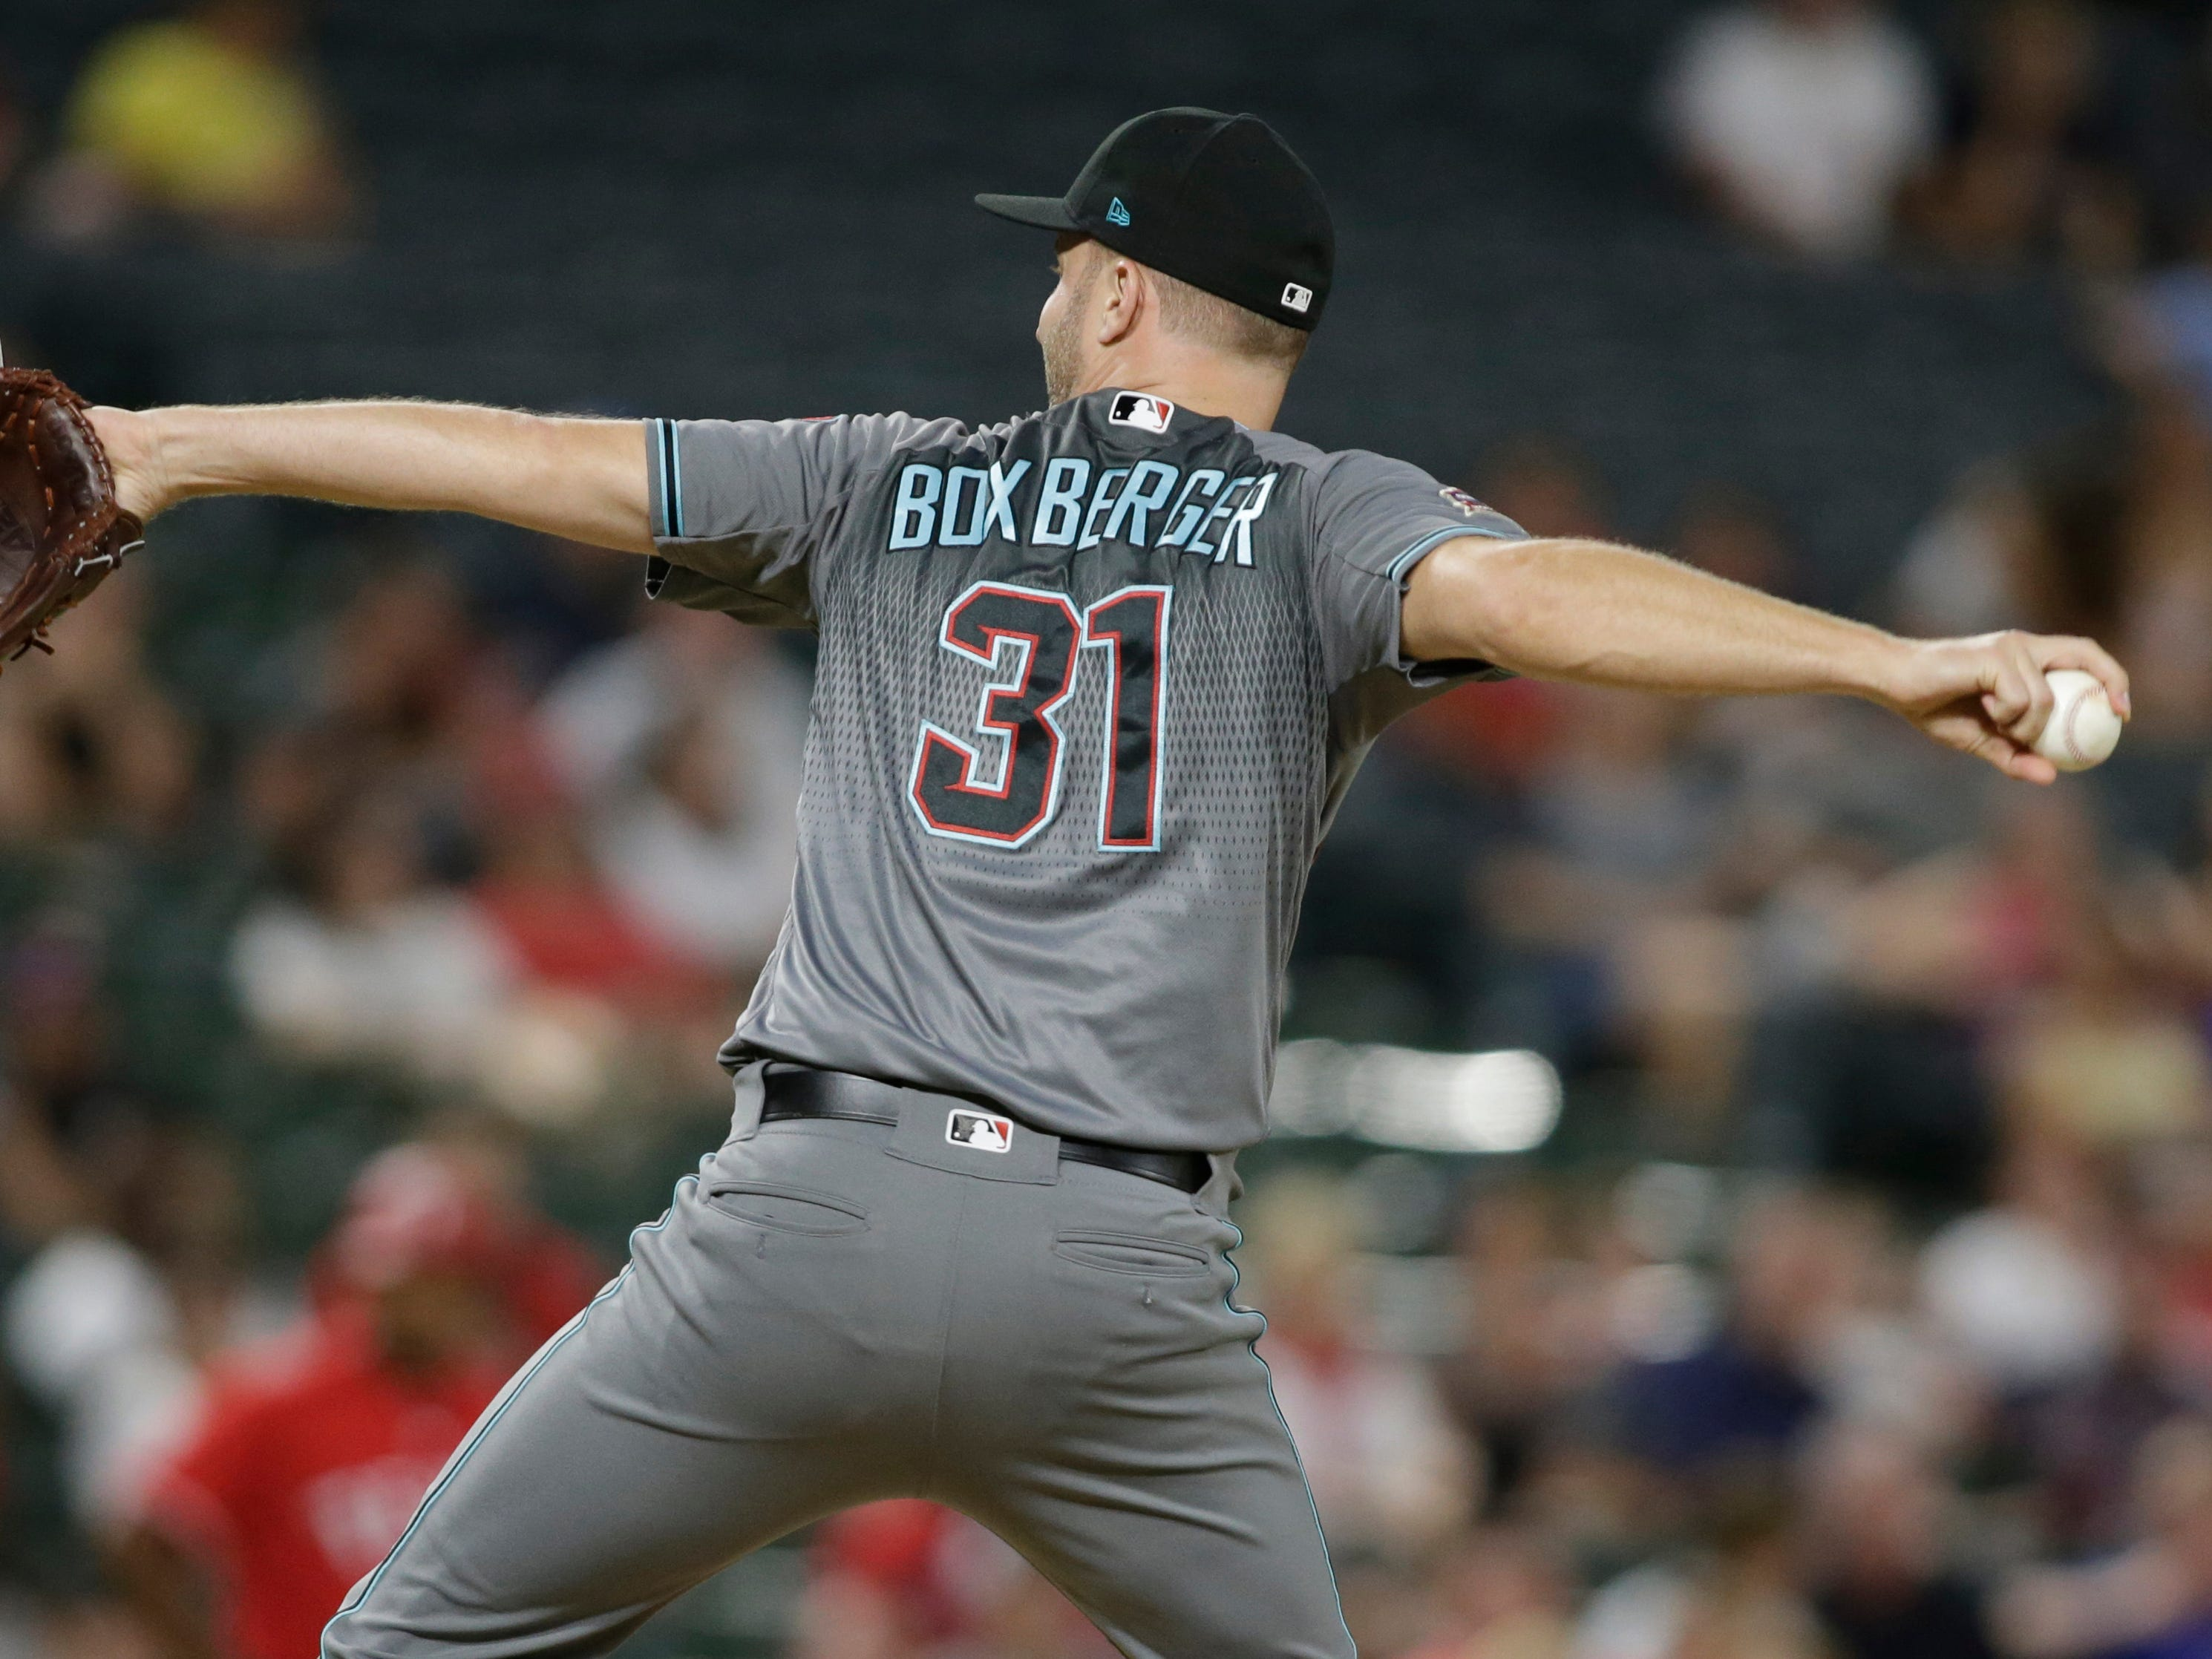 Aug 14, 2018: Arizona Diamondbacks relief pitcher Brad Boxberger (31) throws a pitch in the ninth inning against the Texas Rangers at Globe Life Park in Arlington.